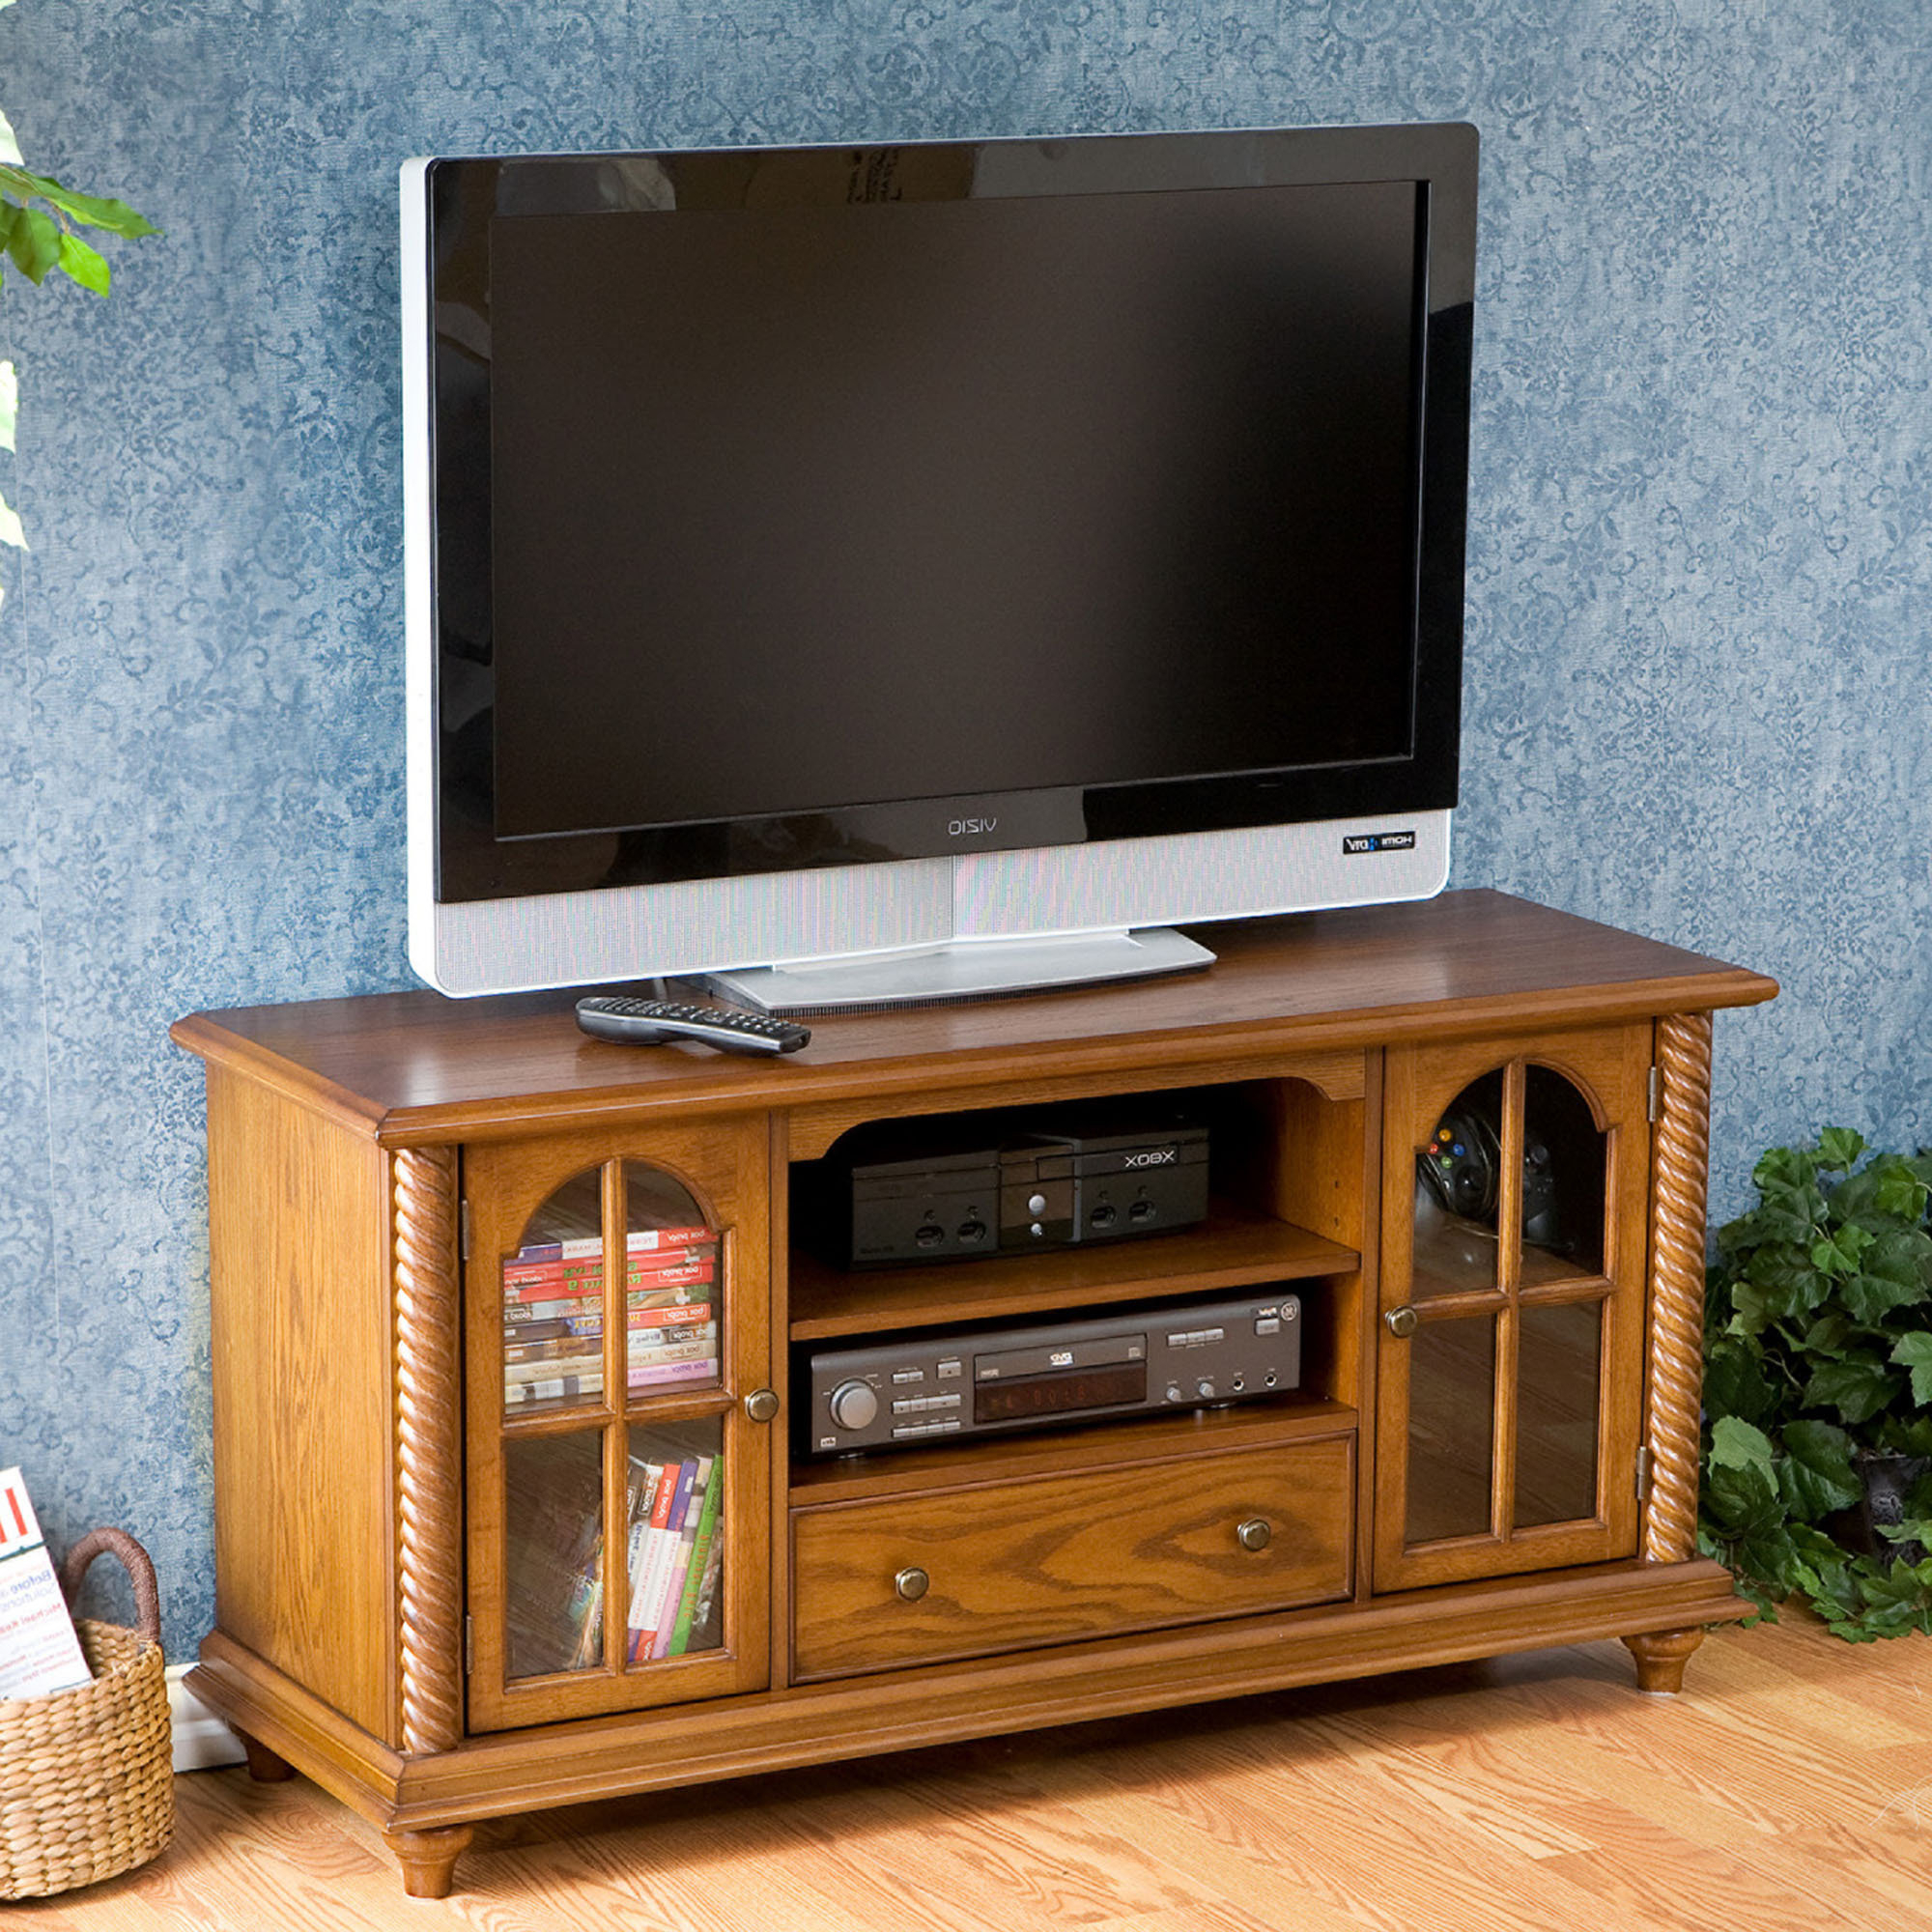 Preferred Ideas: Kmart Fireplace Tv Stand For Exciting Your Space Room Ideas Throughout Fancy Tv Stands (View 12 of 20)